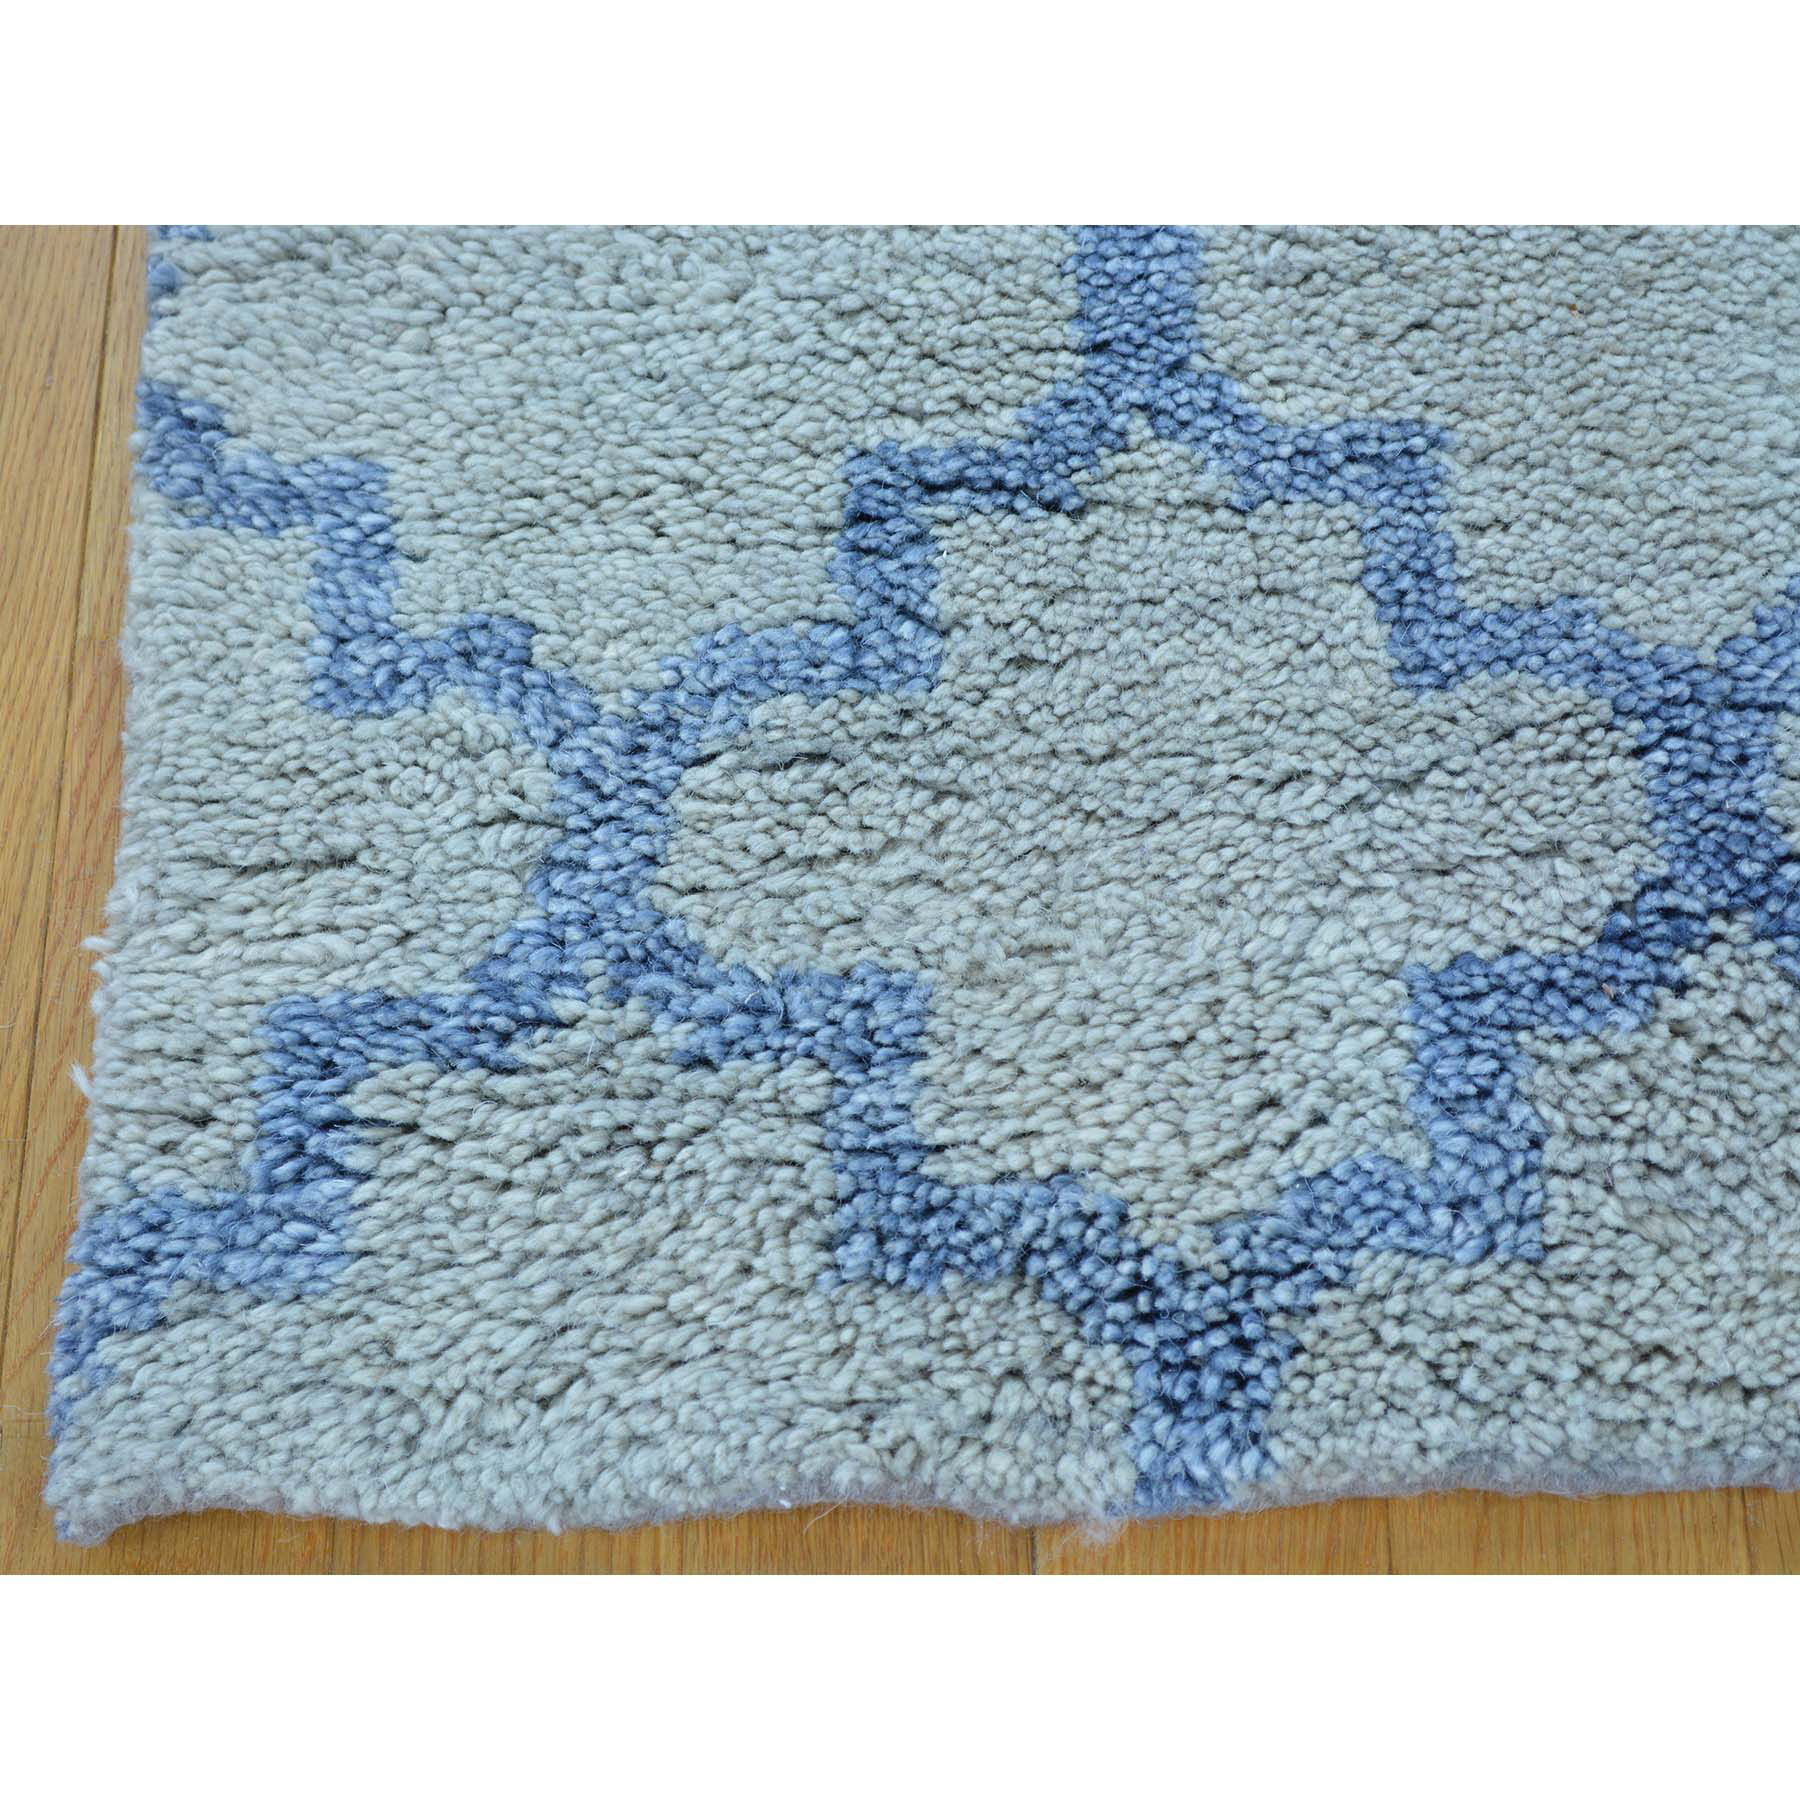 2-1 x3- Hand Knotted Thick and Plush Moroccan Berber Oriental Rug